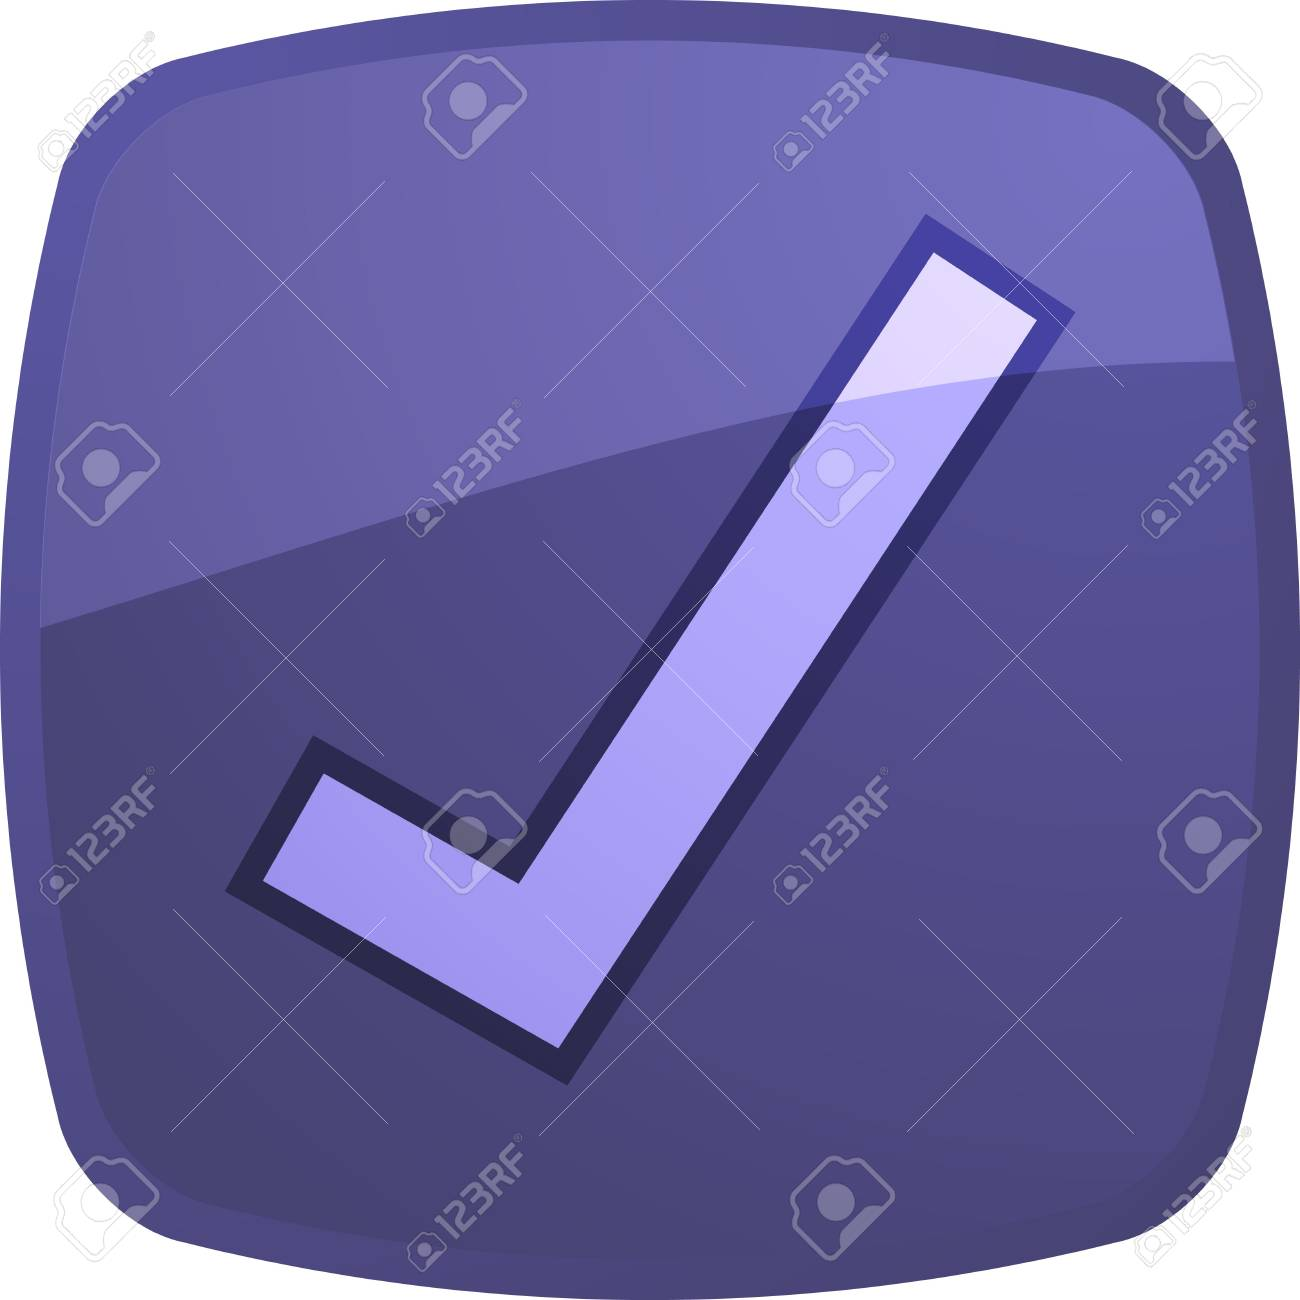 Confirm navigation icon glossy button, square shape Stock Photo - 4899259